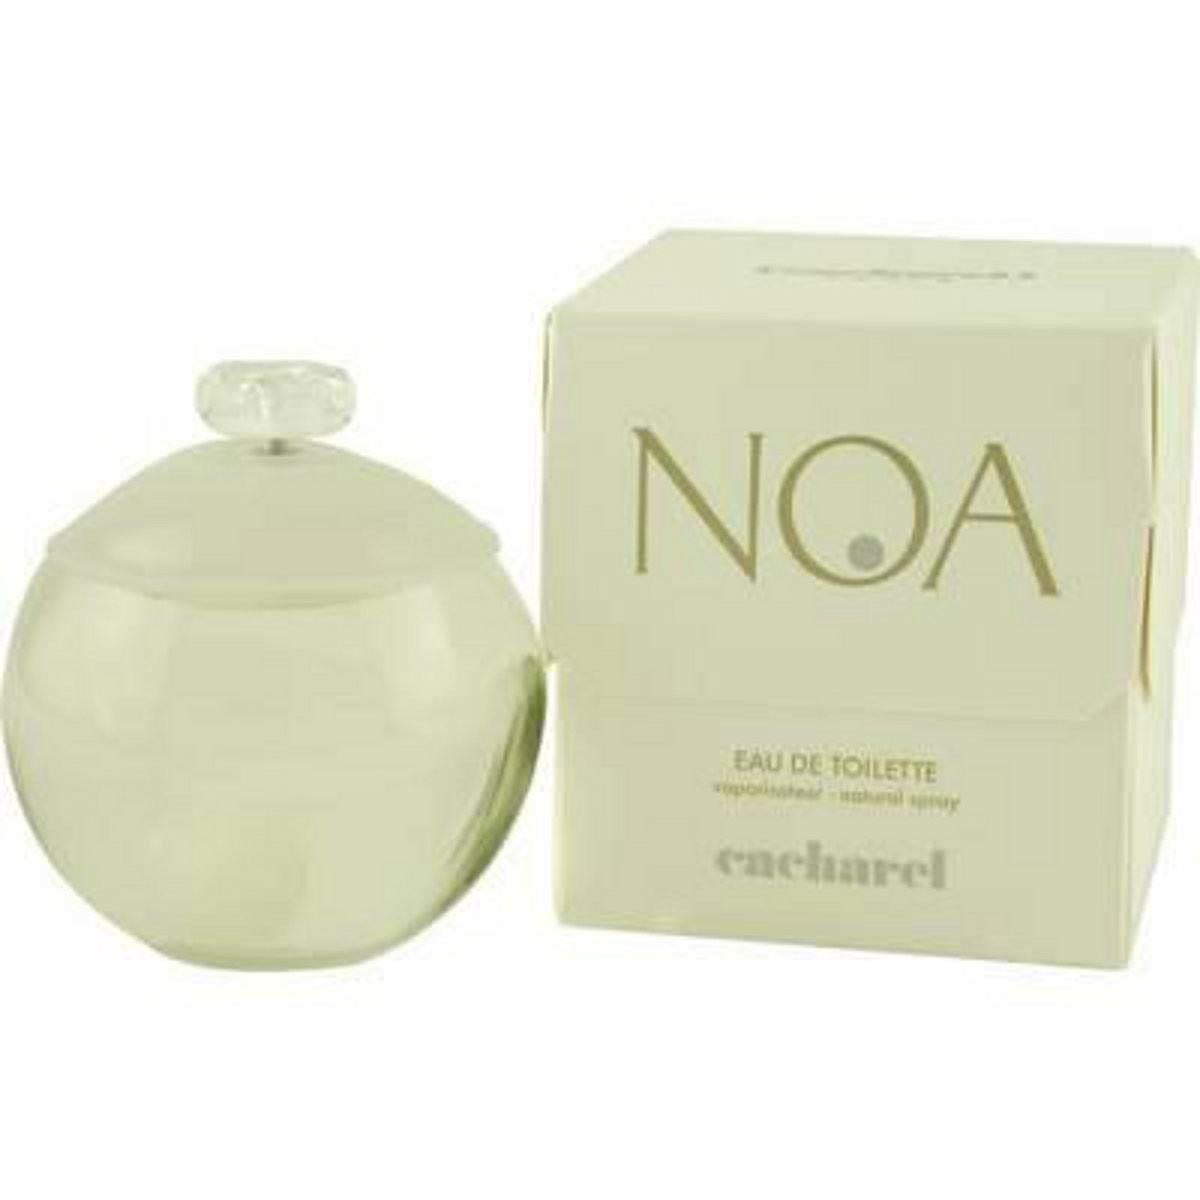 NOA by Cacharel Perfume 3.4 oz 3.3 Spray New in Box